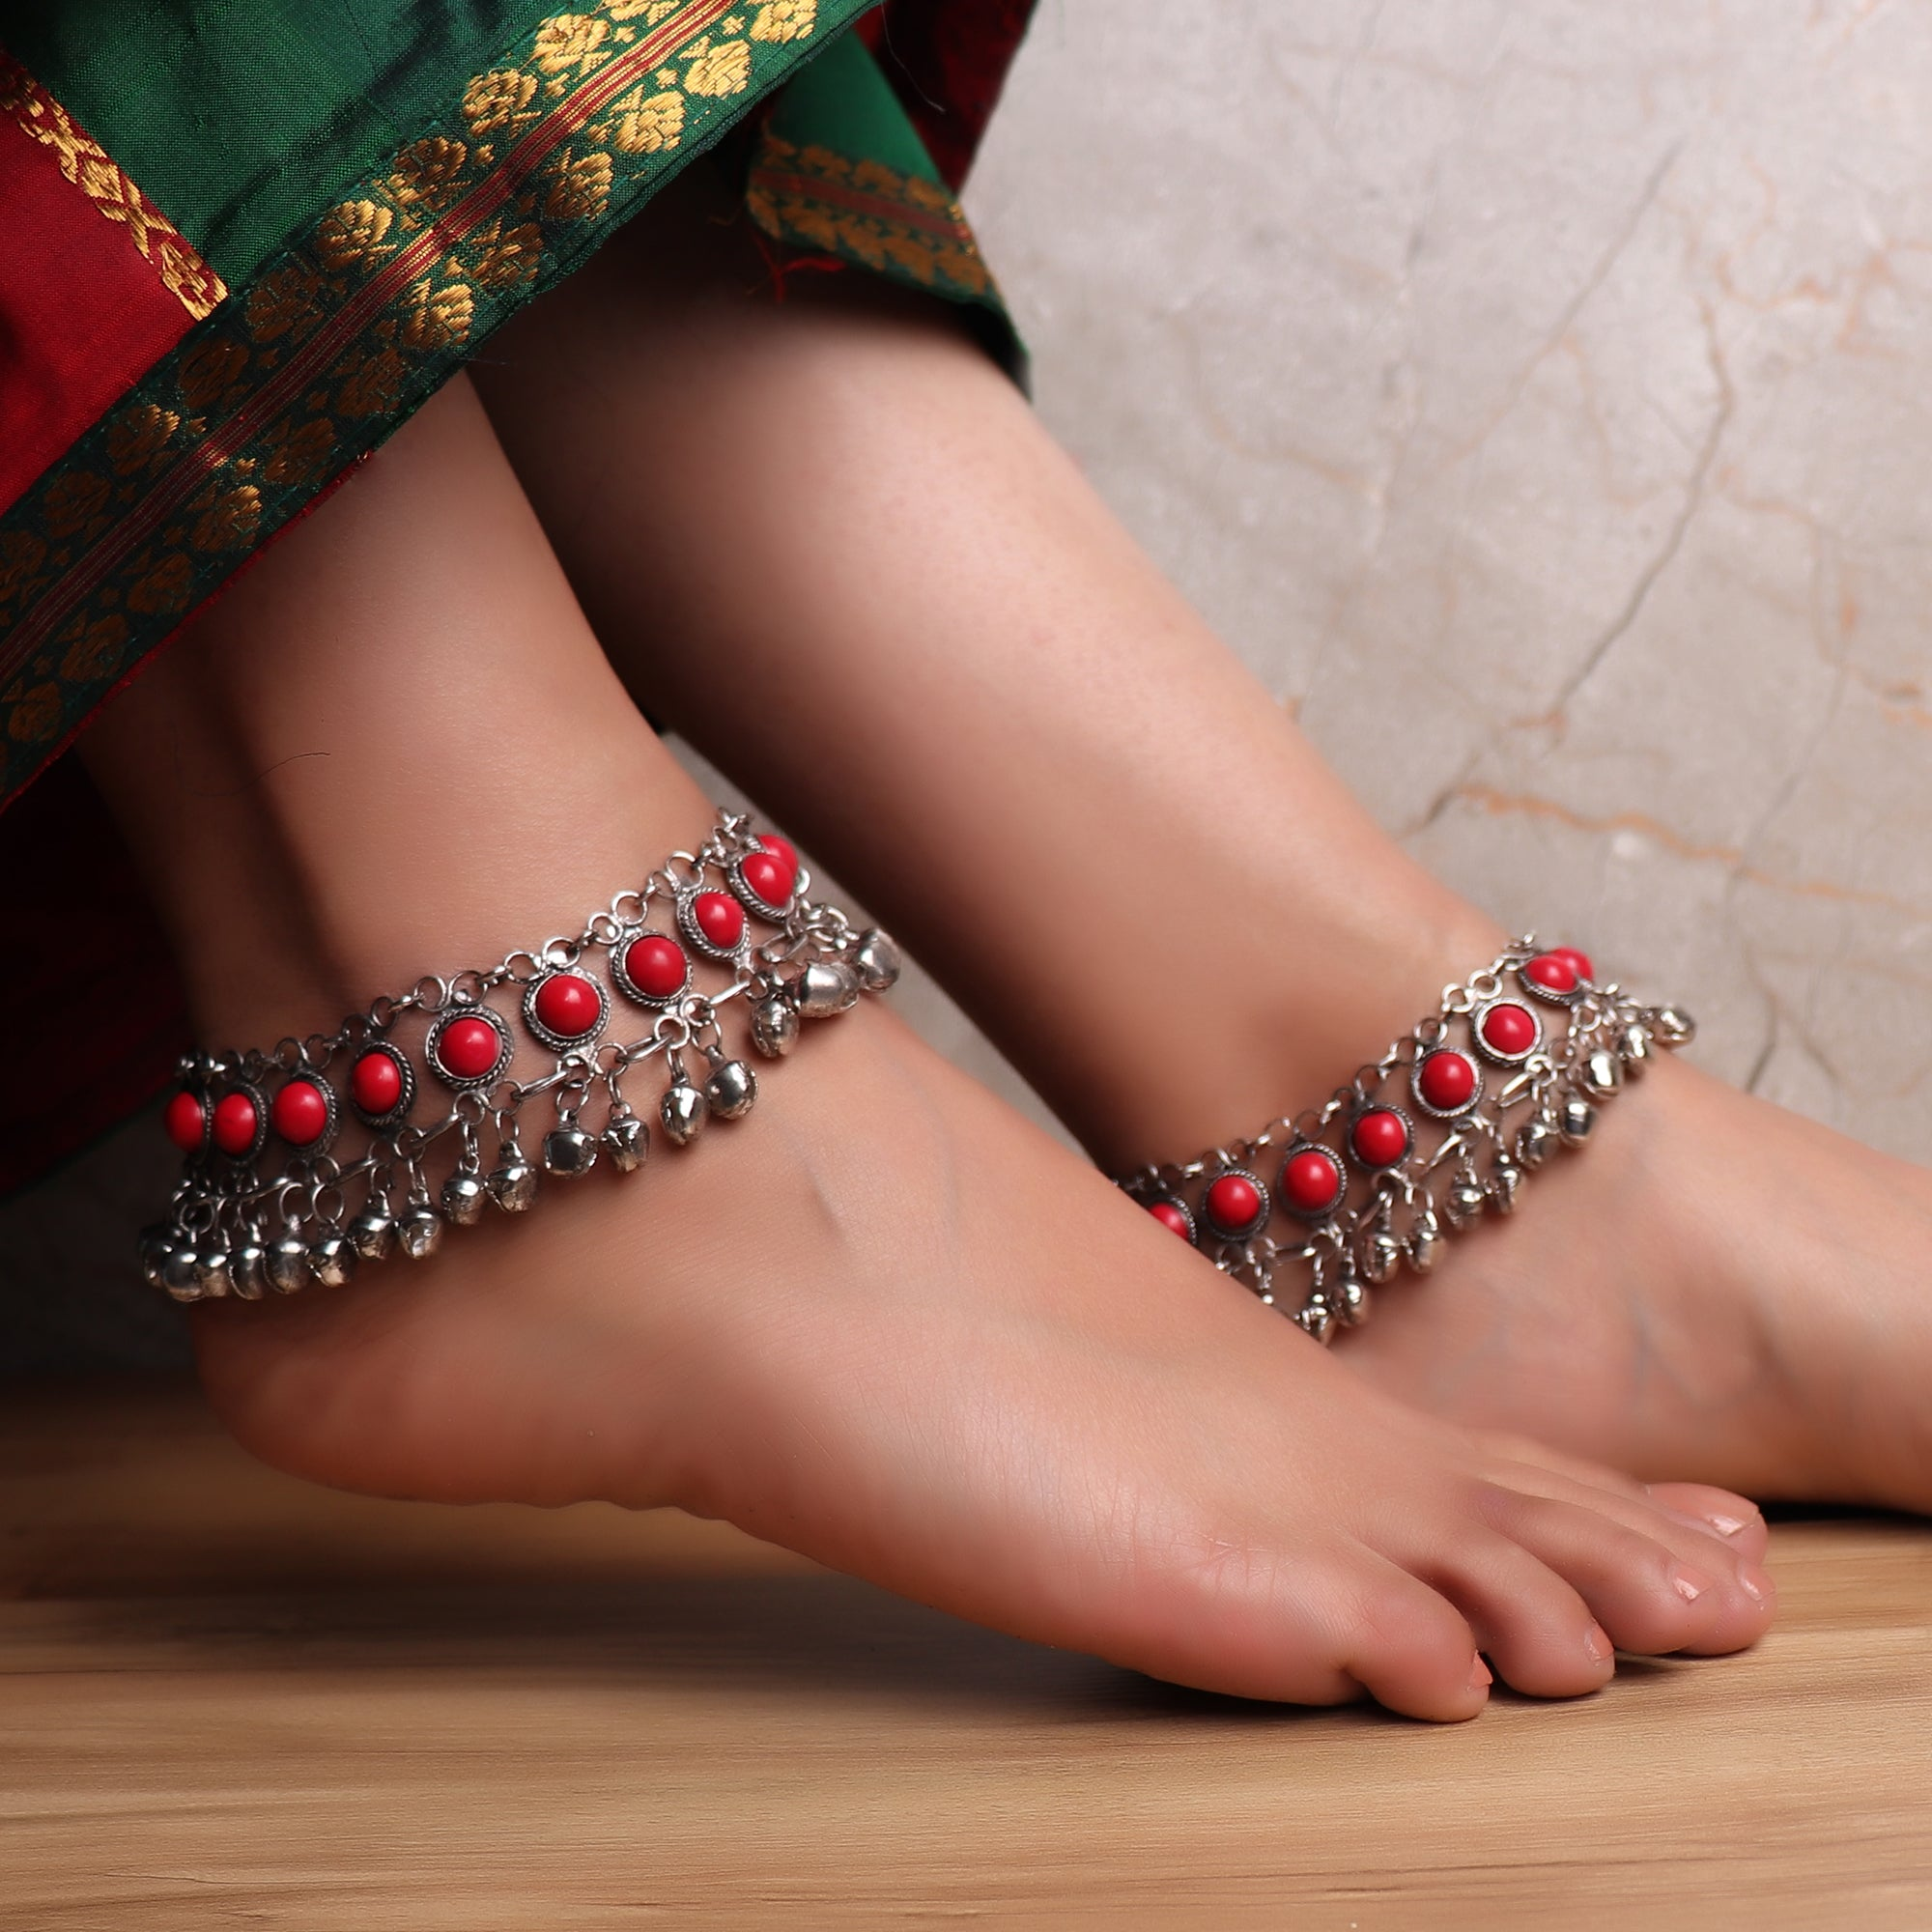 Anklet,The Festivity Anklet in Red (Pair of 2) - Cippele Multi Store